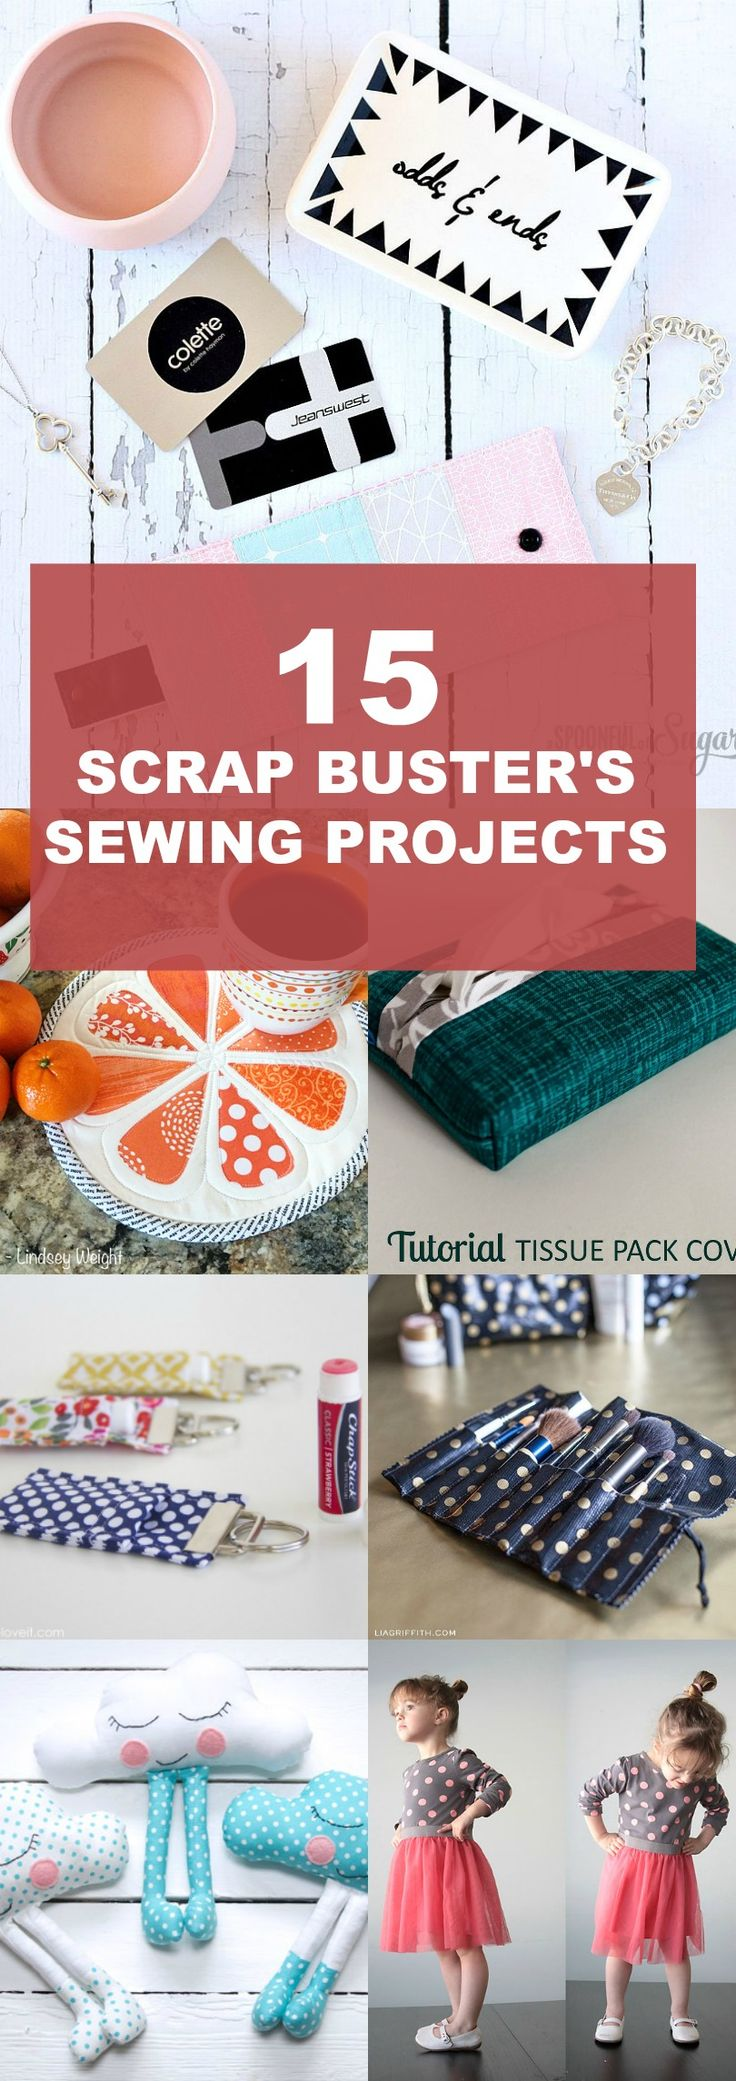 FREE PATTERNS ALERT: 15 scrap buster's projects. Get access to 15 sewing projects and sewing tutorials to make use of your scraps.